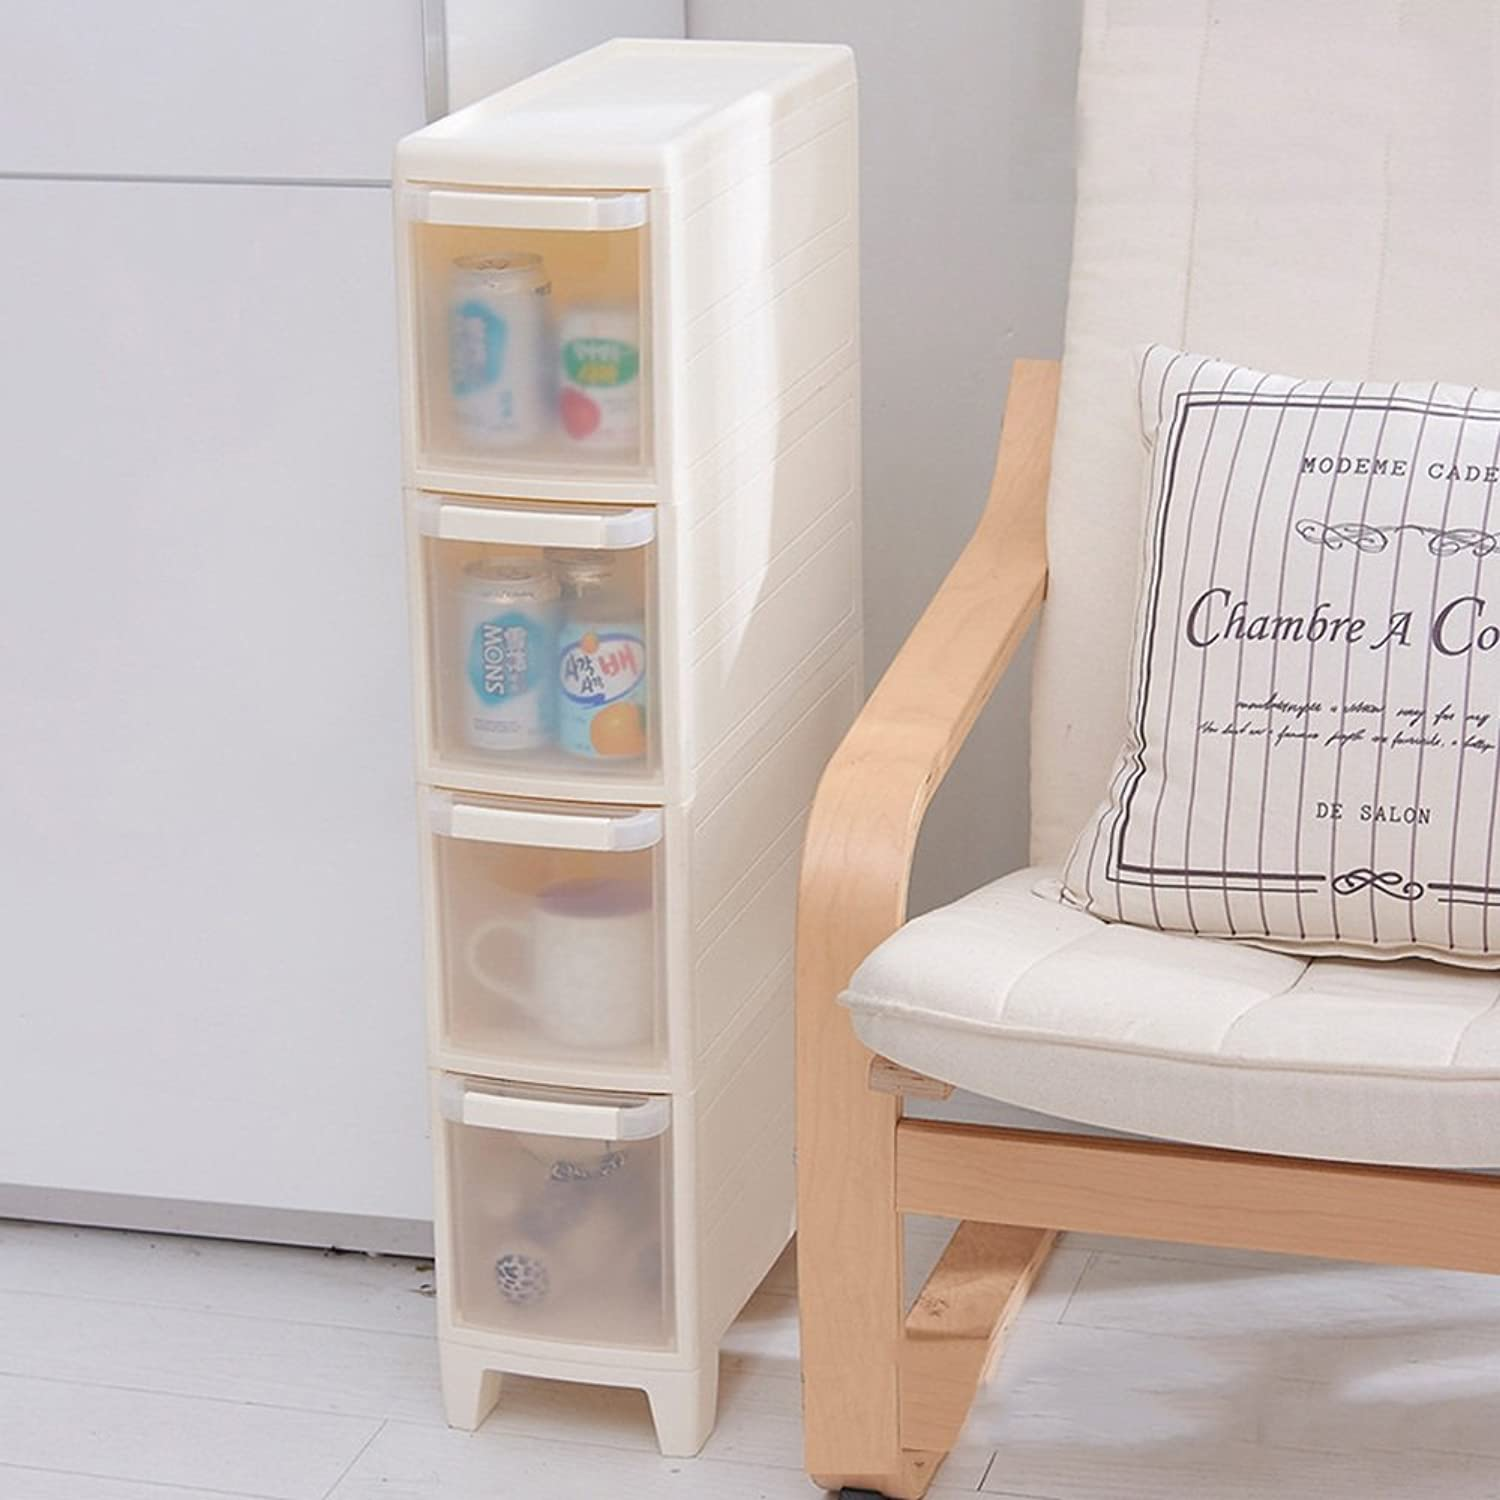 Gap Drawer Type Storage Cabinet,Narrow Storage Cabinet with Wheel, Multilayer Plastic Bathroom Kitchen Rack -by TIANTA